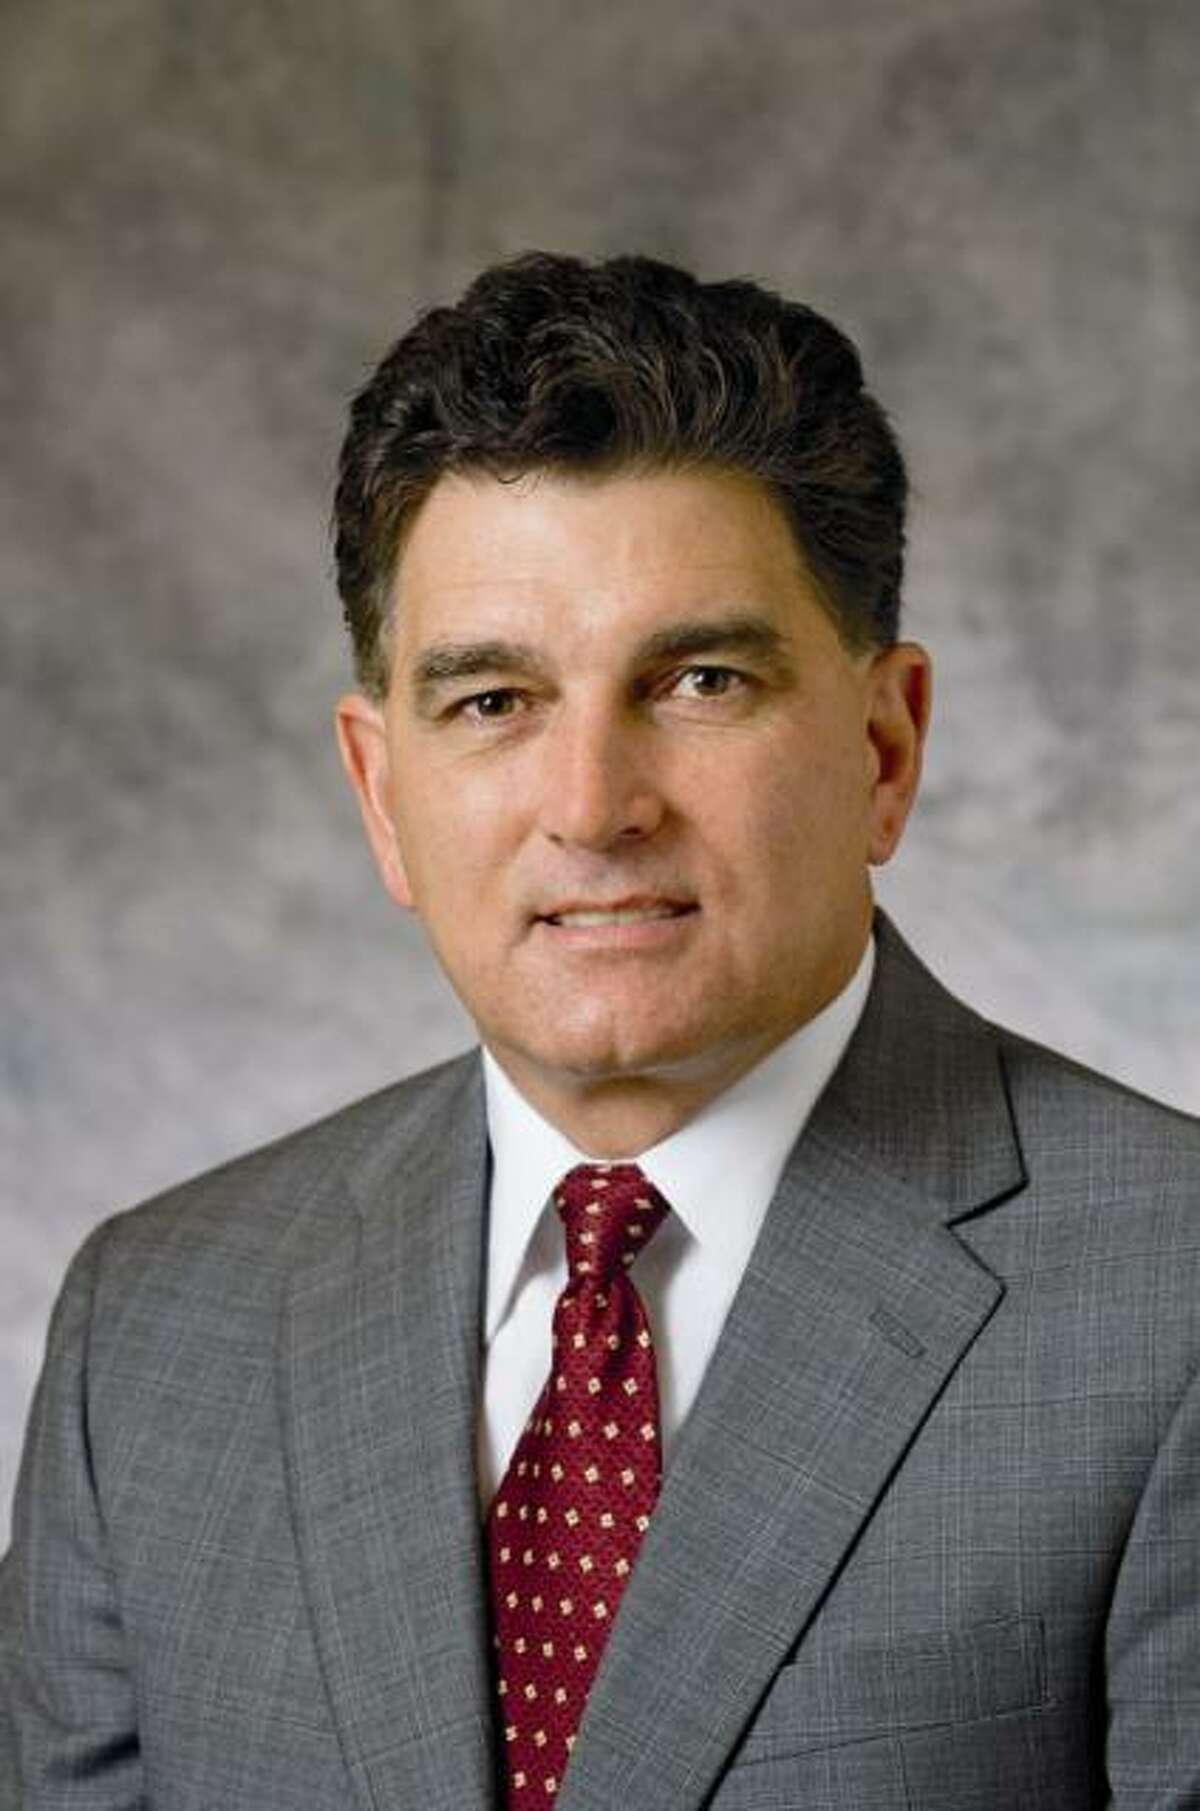 Gregory Goff is the president and CEO of Andeavor and will be one of three Andeavor executives to join the new leadership team at the combined Marathon Petroleum Corp. when it completes its purchase of the San Antonio-based refiner.